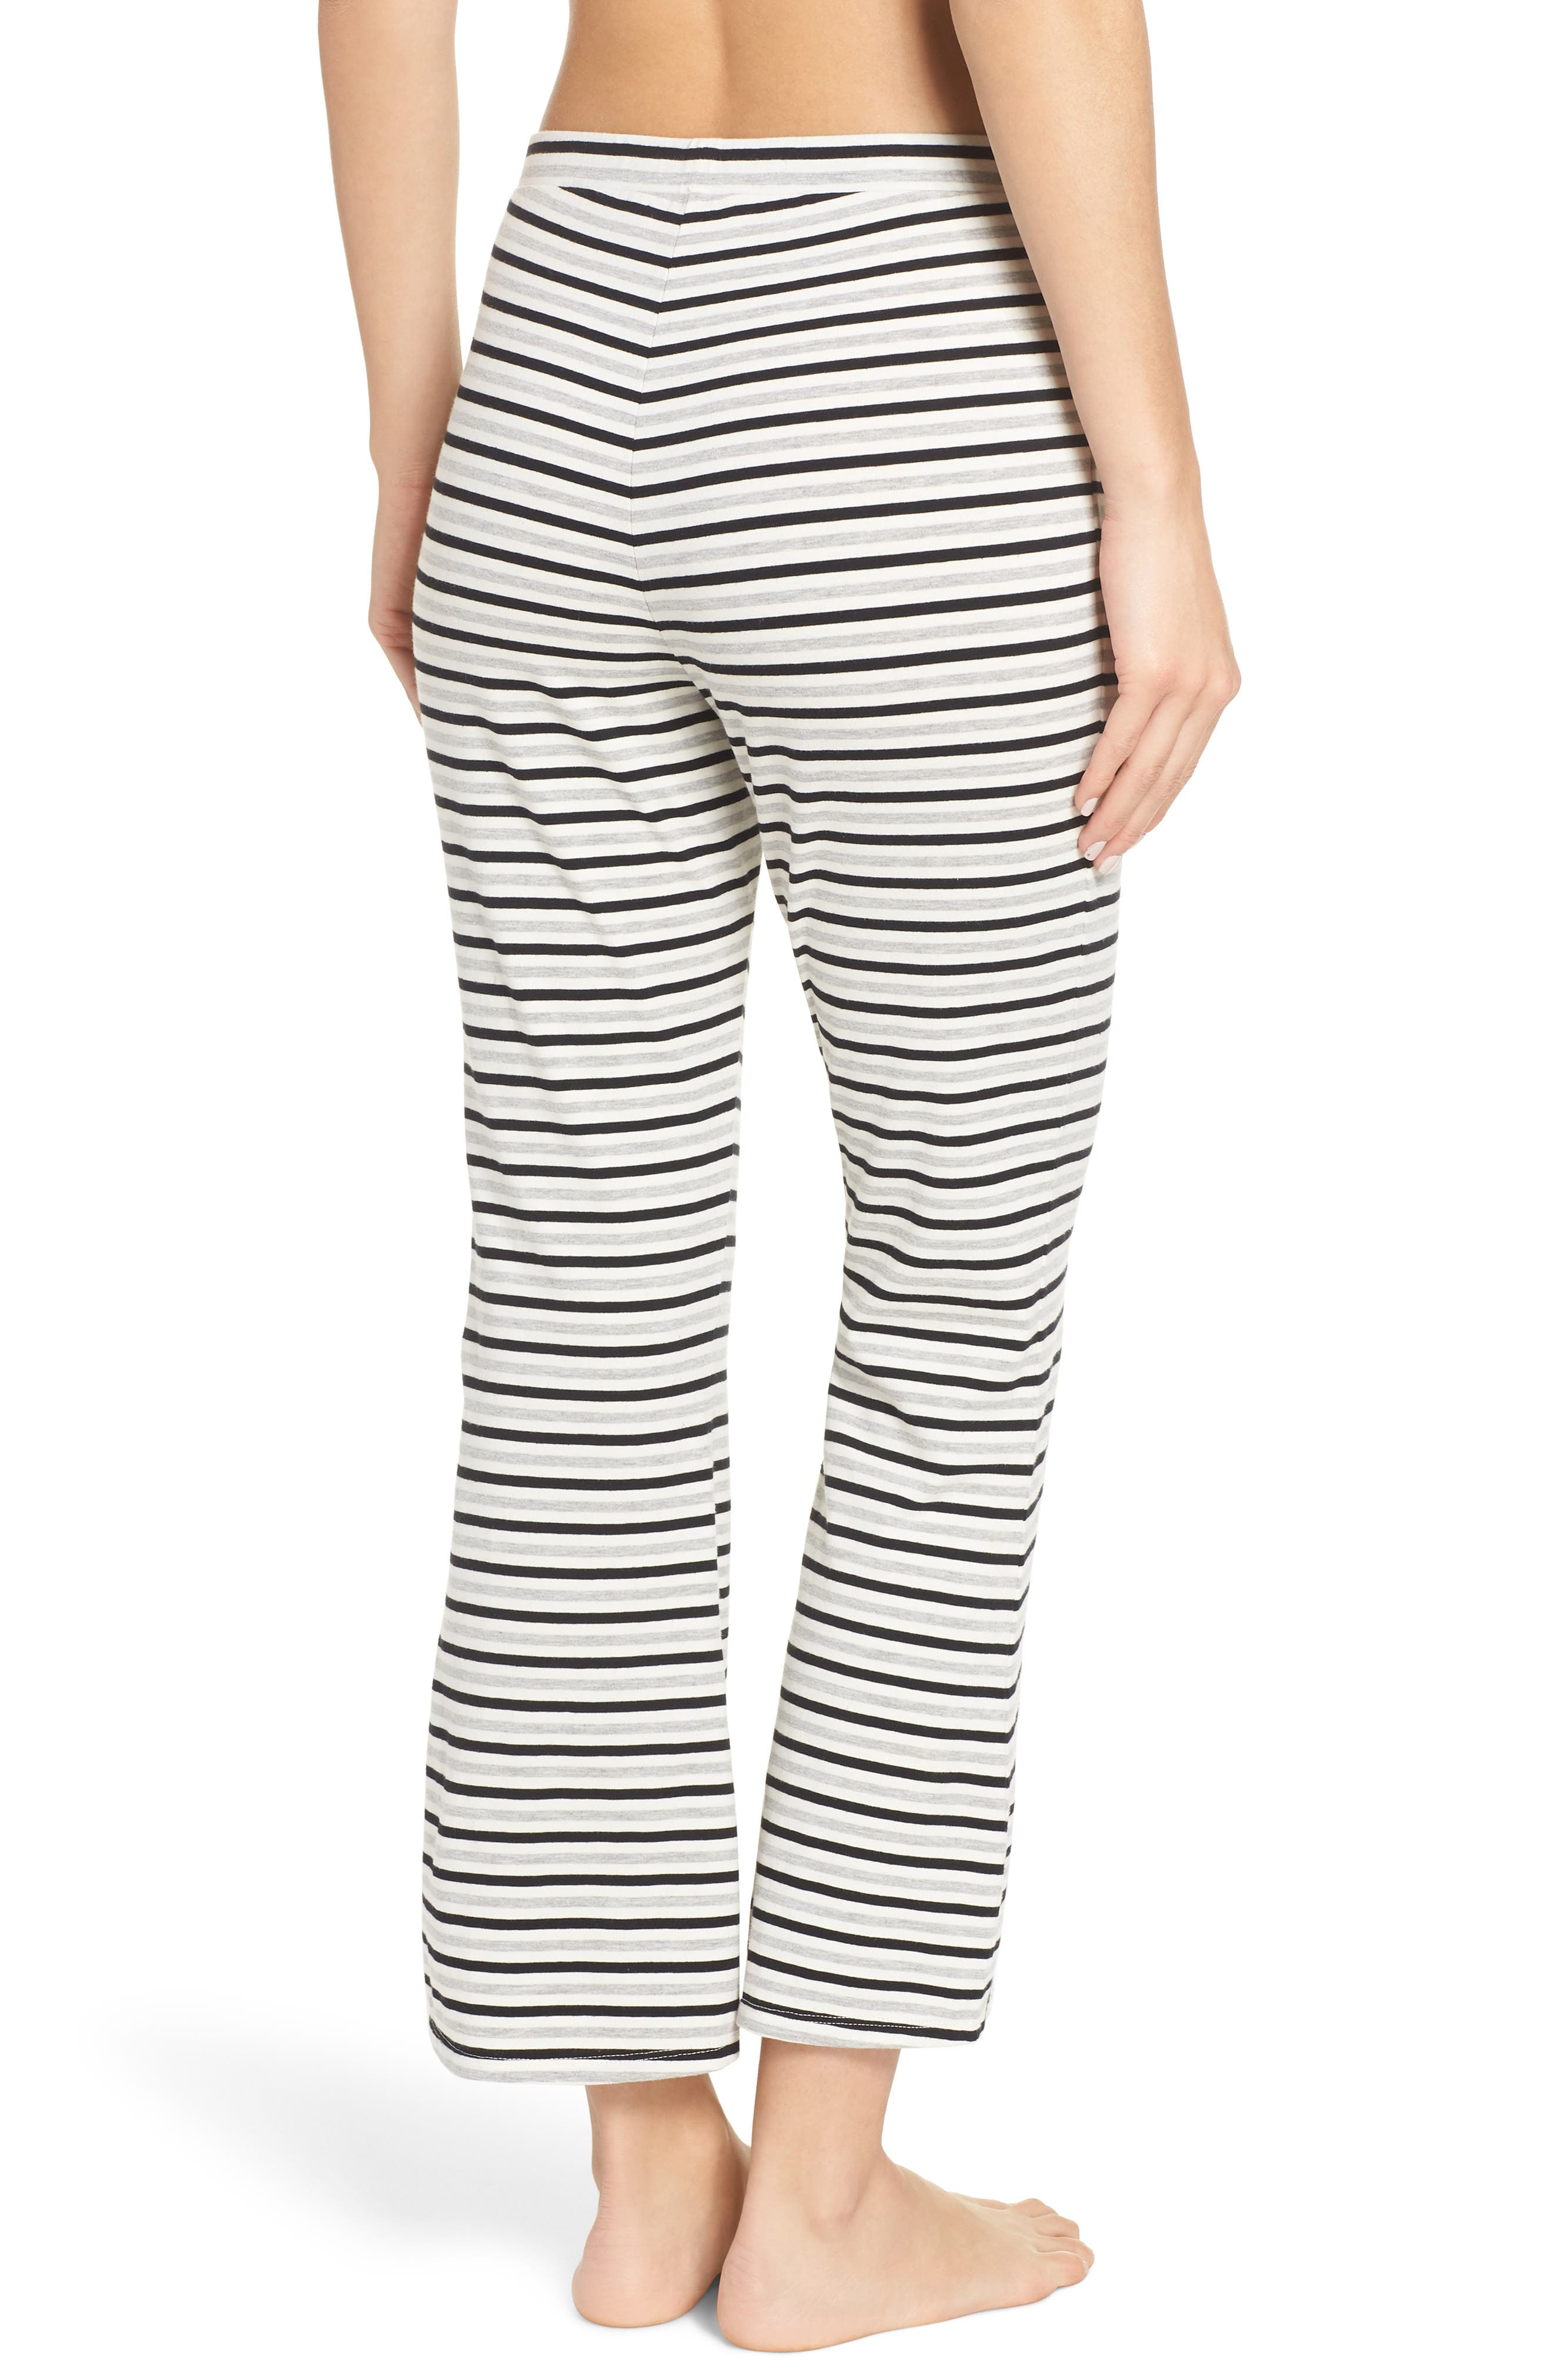 Flare for Drama Crop Lounge Pants,                             Alternate thumbnail 2, color,                             IVORY